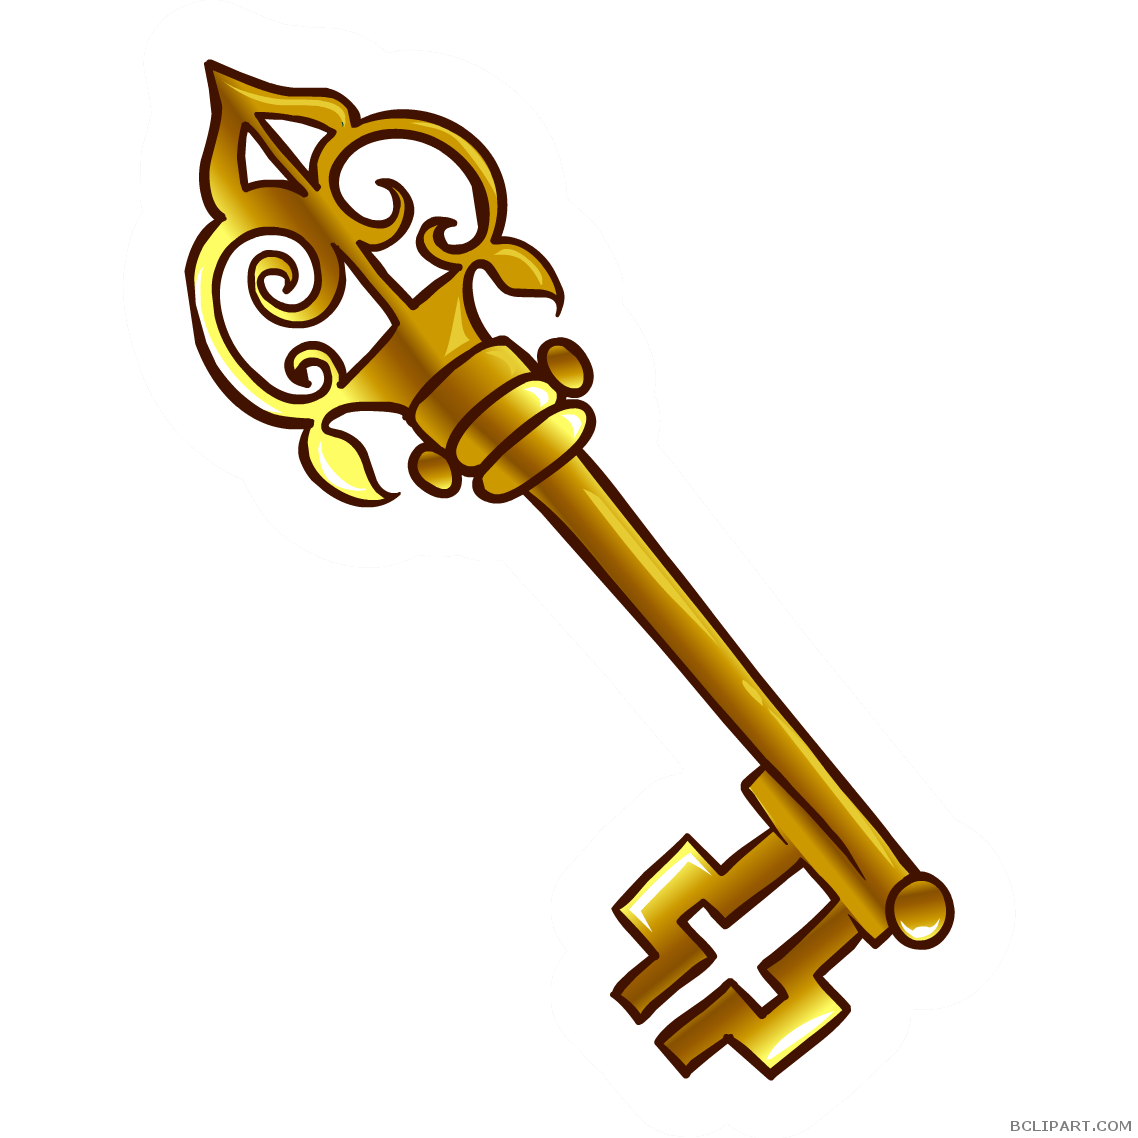 Old bclipart tools images. Free clipart key